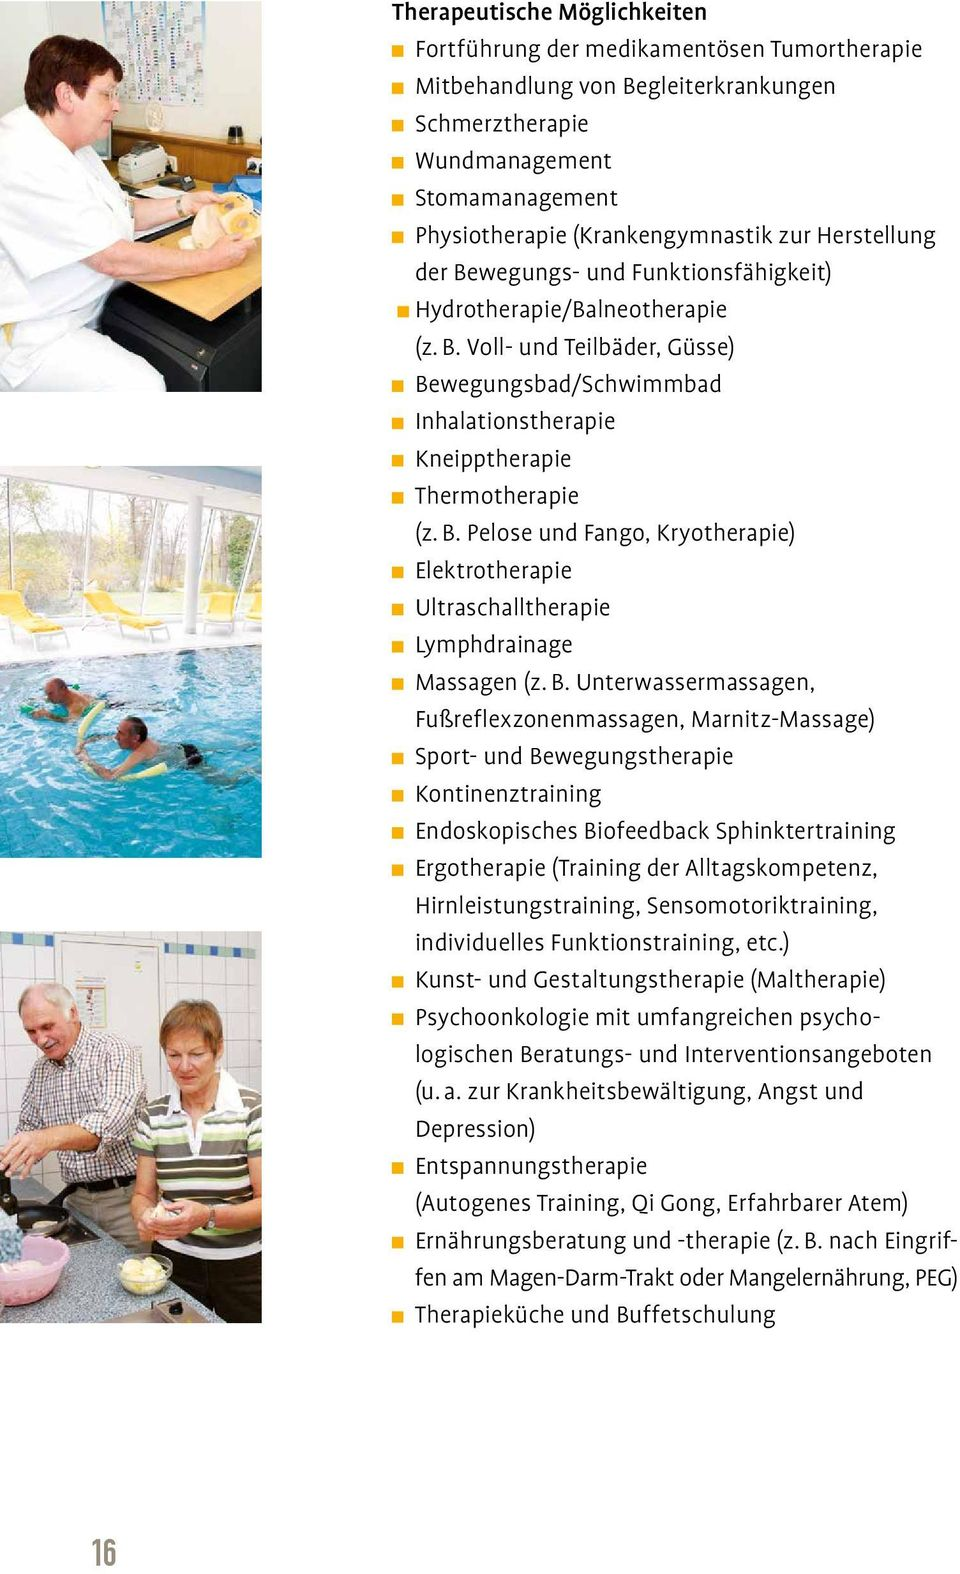 B. Unterwassermassagen, Fußreflexzonenmassagen, Marnitz-Massage) Sport- und Bewegungstherapie Kontinenztraining Endoskopisches Biofeedback Sphinktertraining Ergotherapie (Training der